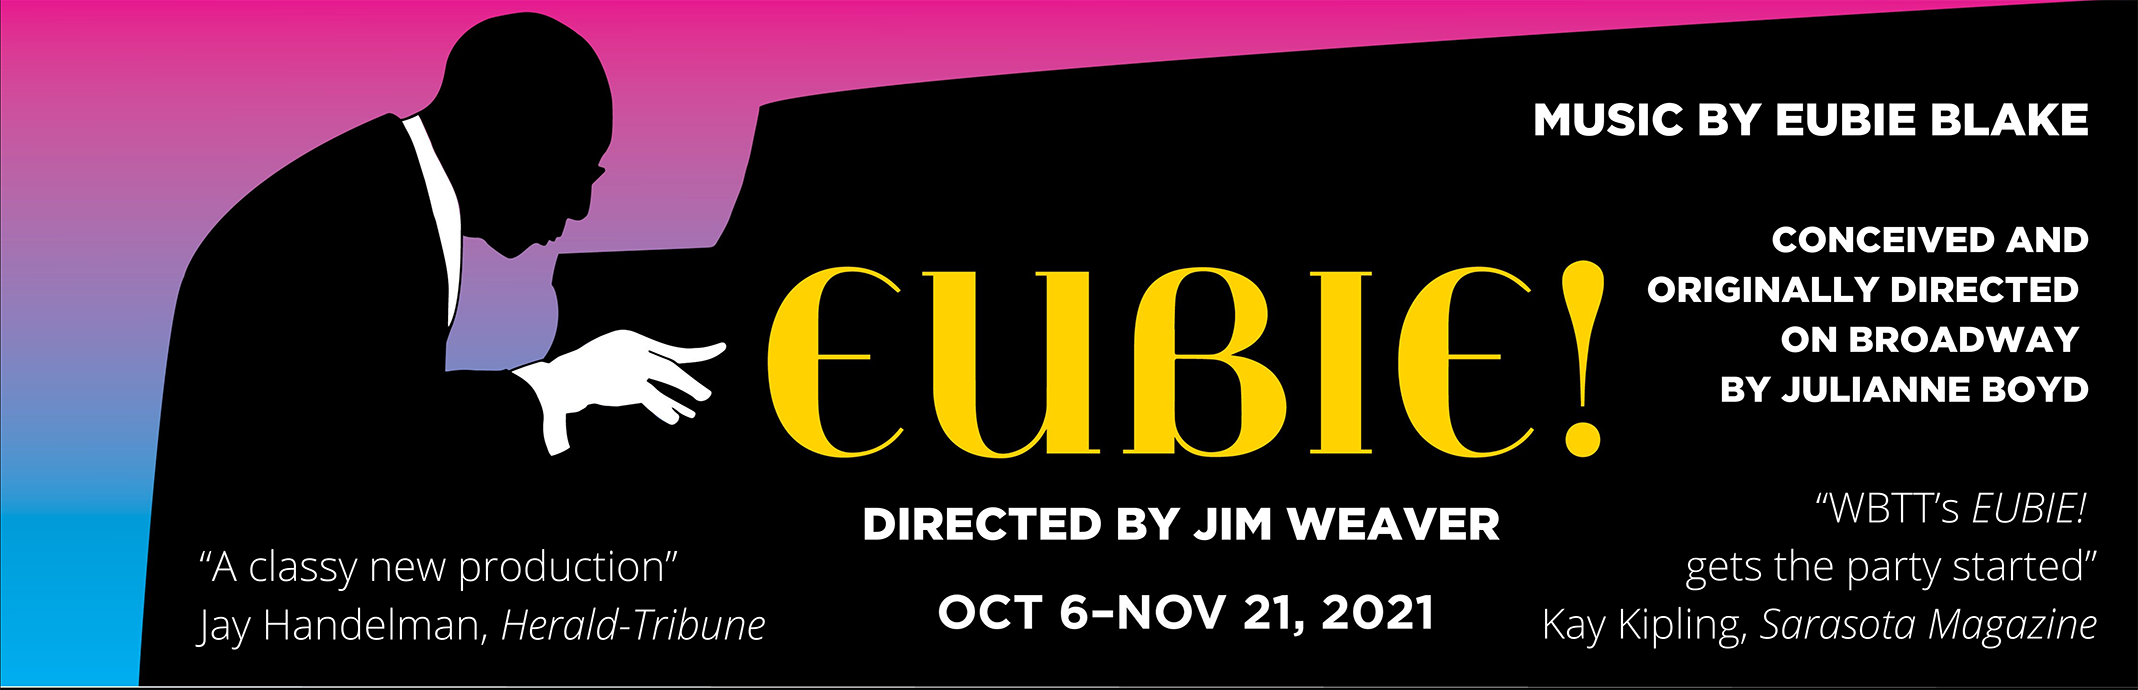 Eubie; Directed by Jim Weaver; October 6 0 November 21, 2021; Tickets on Sale Now!